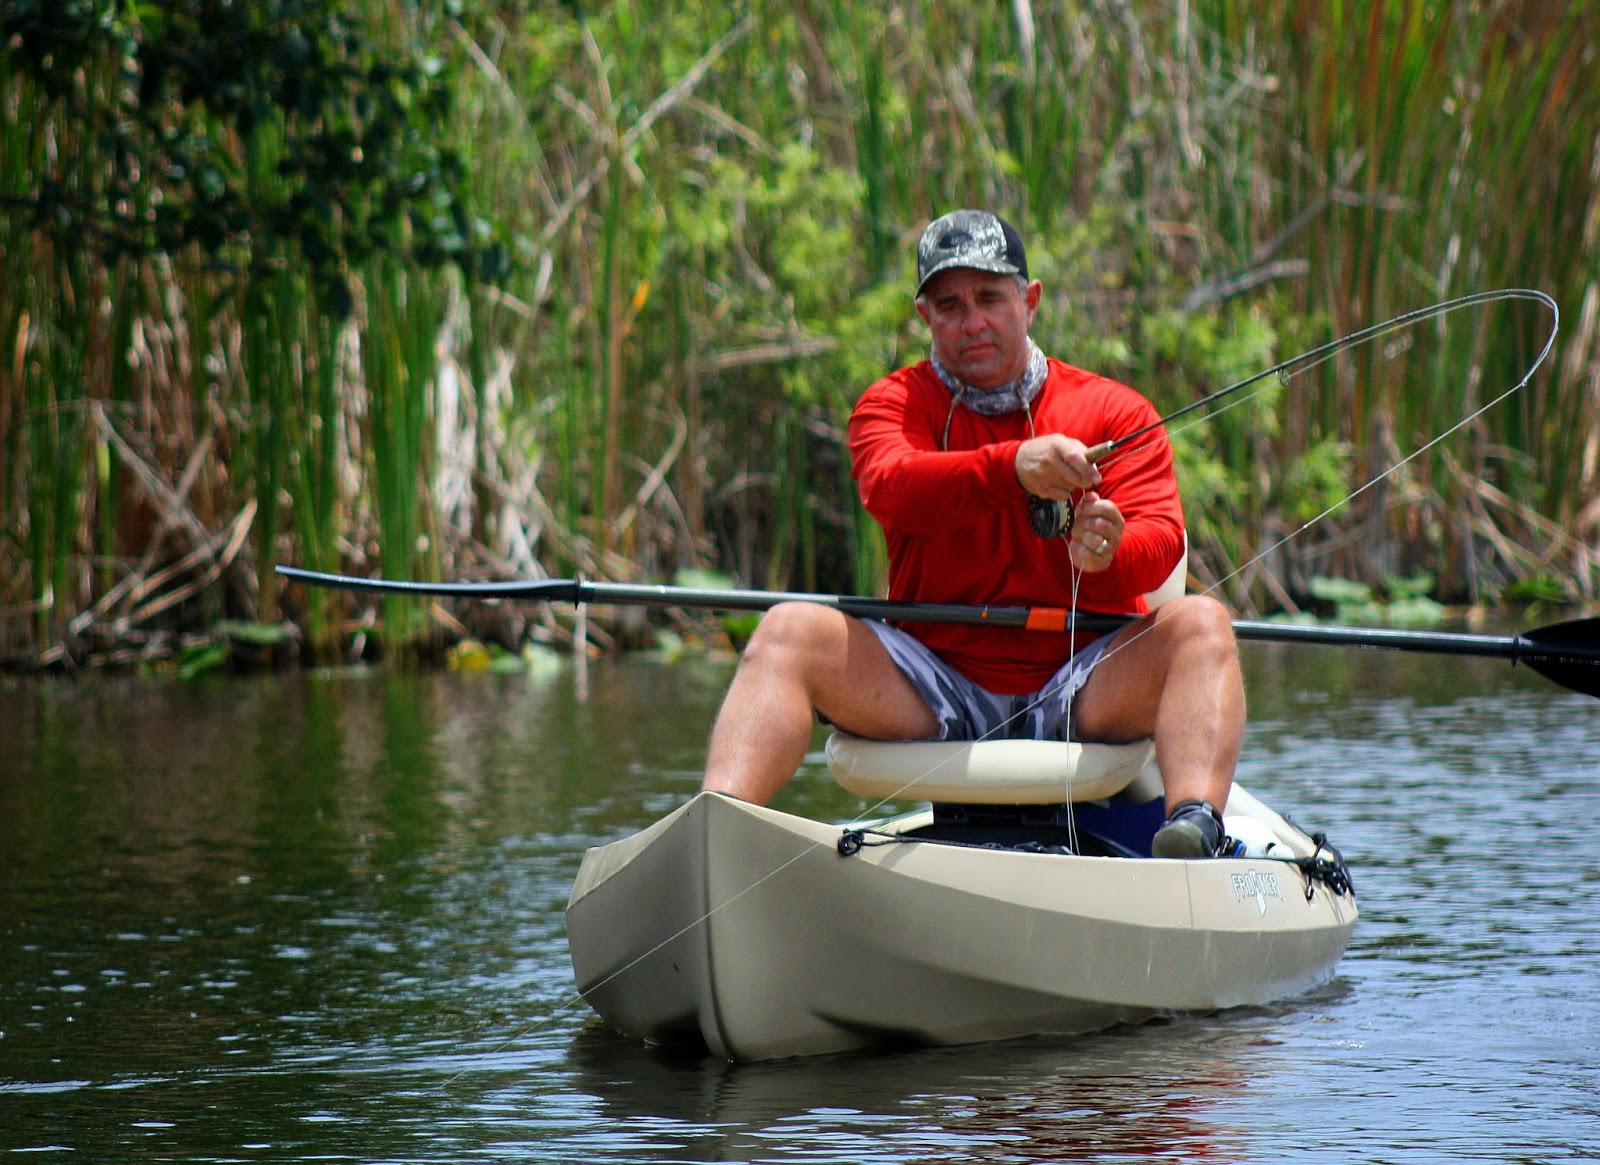 Southern kayak kronicles improved forecast for june for Most stable fishing kayak